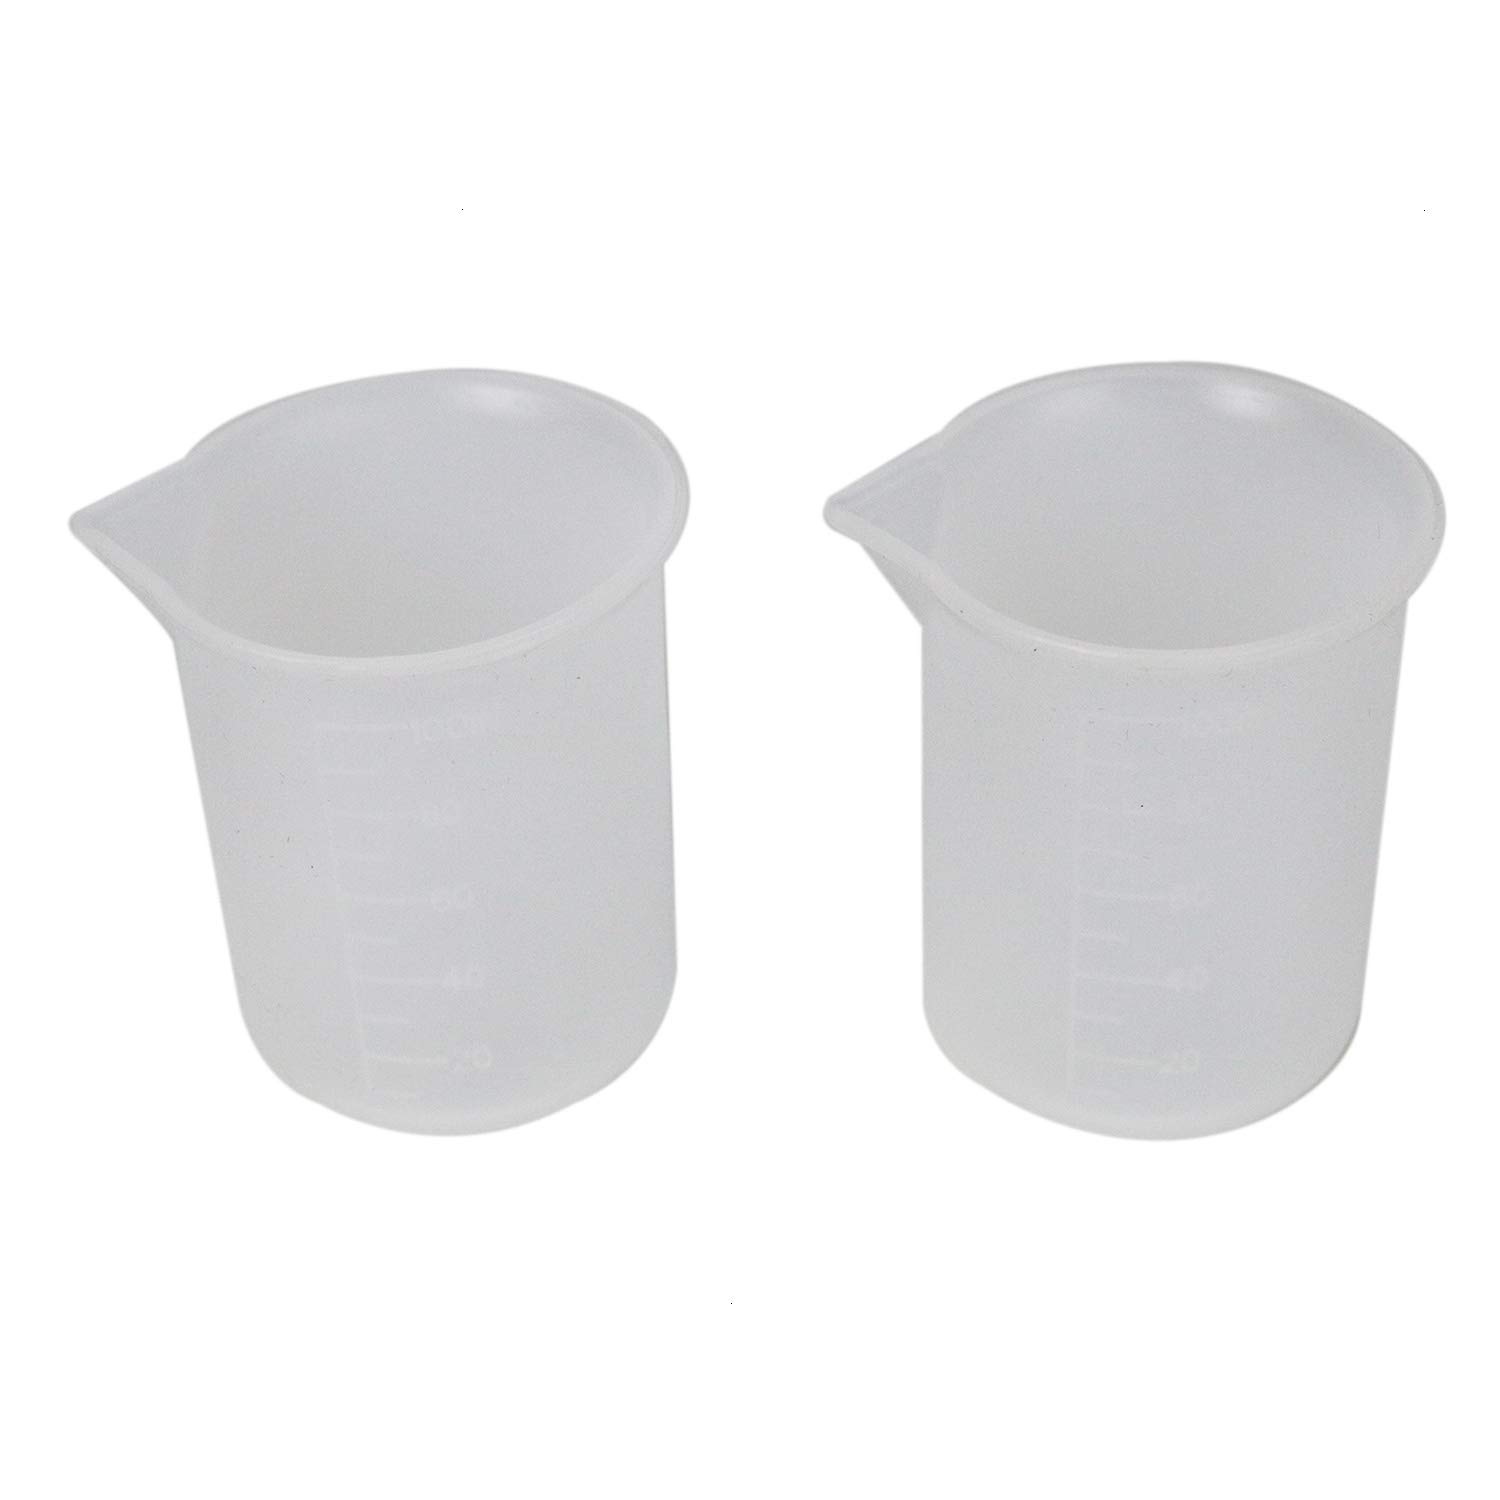 HUELE 2pcs 100 ml Measuring Cup Silicone Mold Resin Glue Tools DIY Resin Glue Tools Cup Jewelry Tools Resin Molds